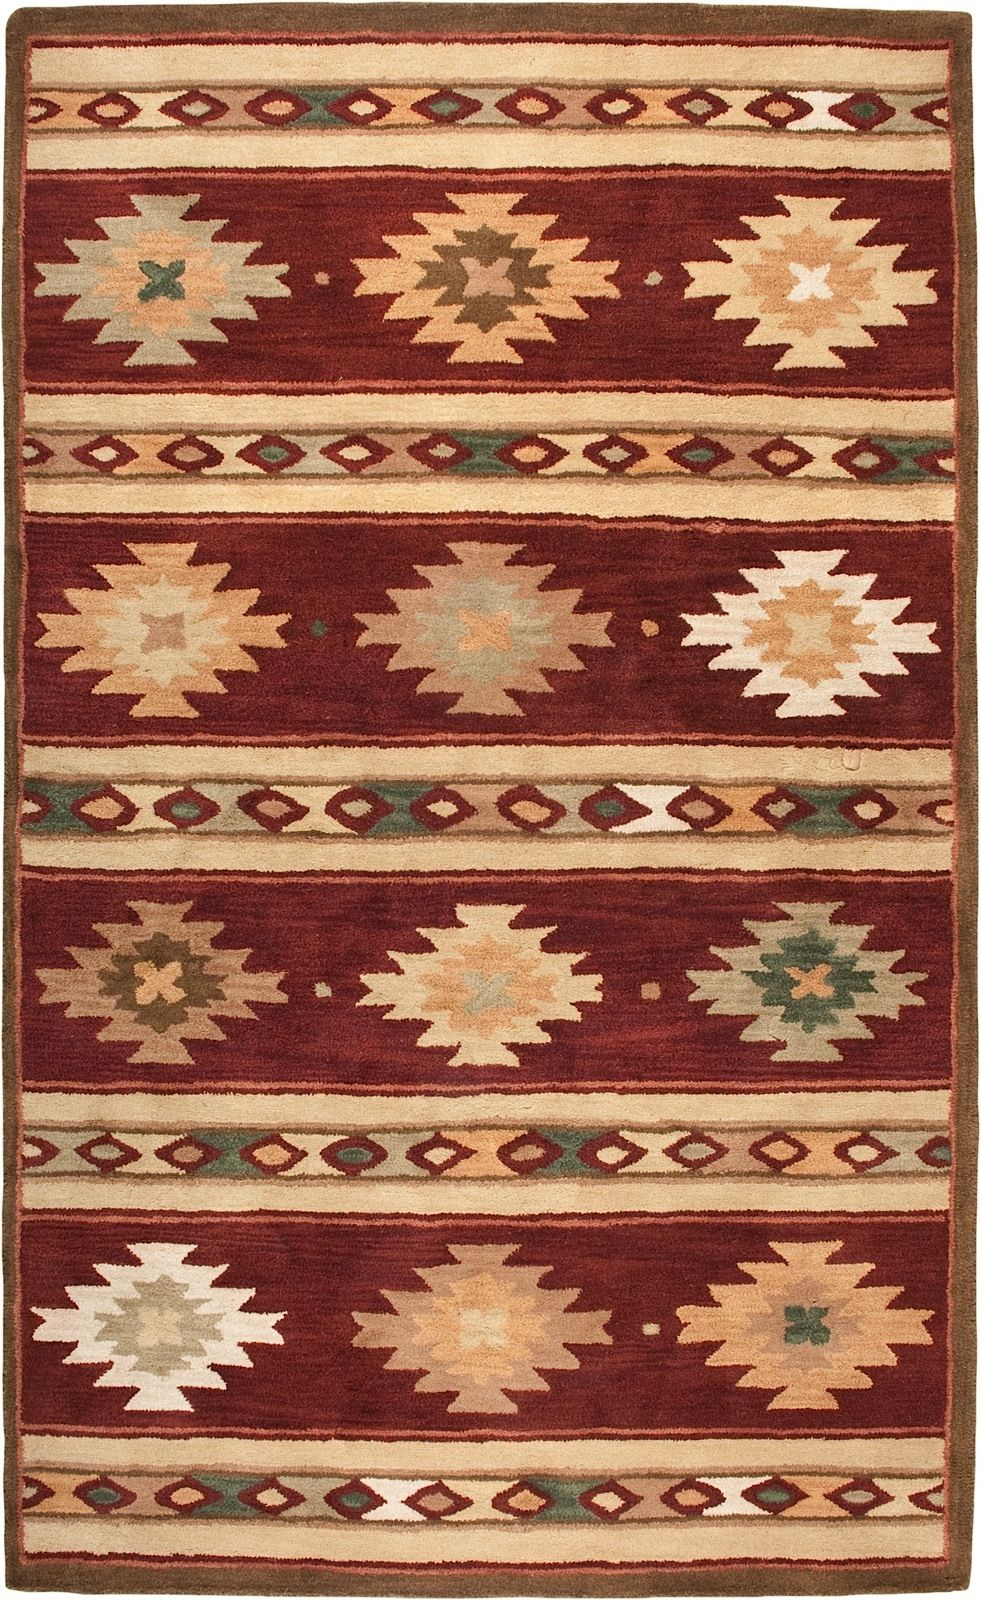 Rizzy Rugs Southwest Southwestern Lodge Area Rug